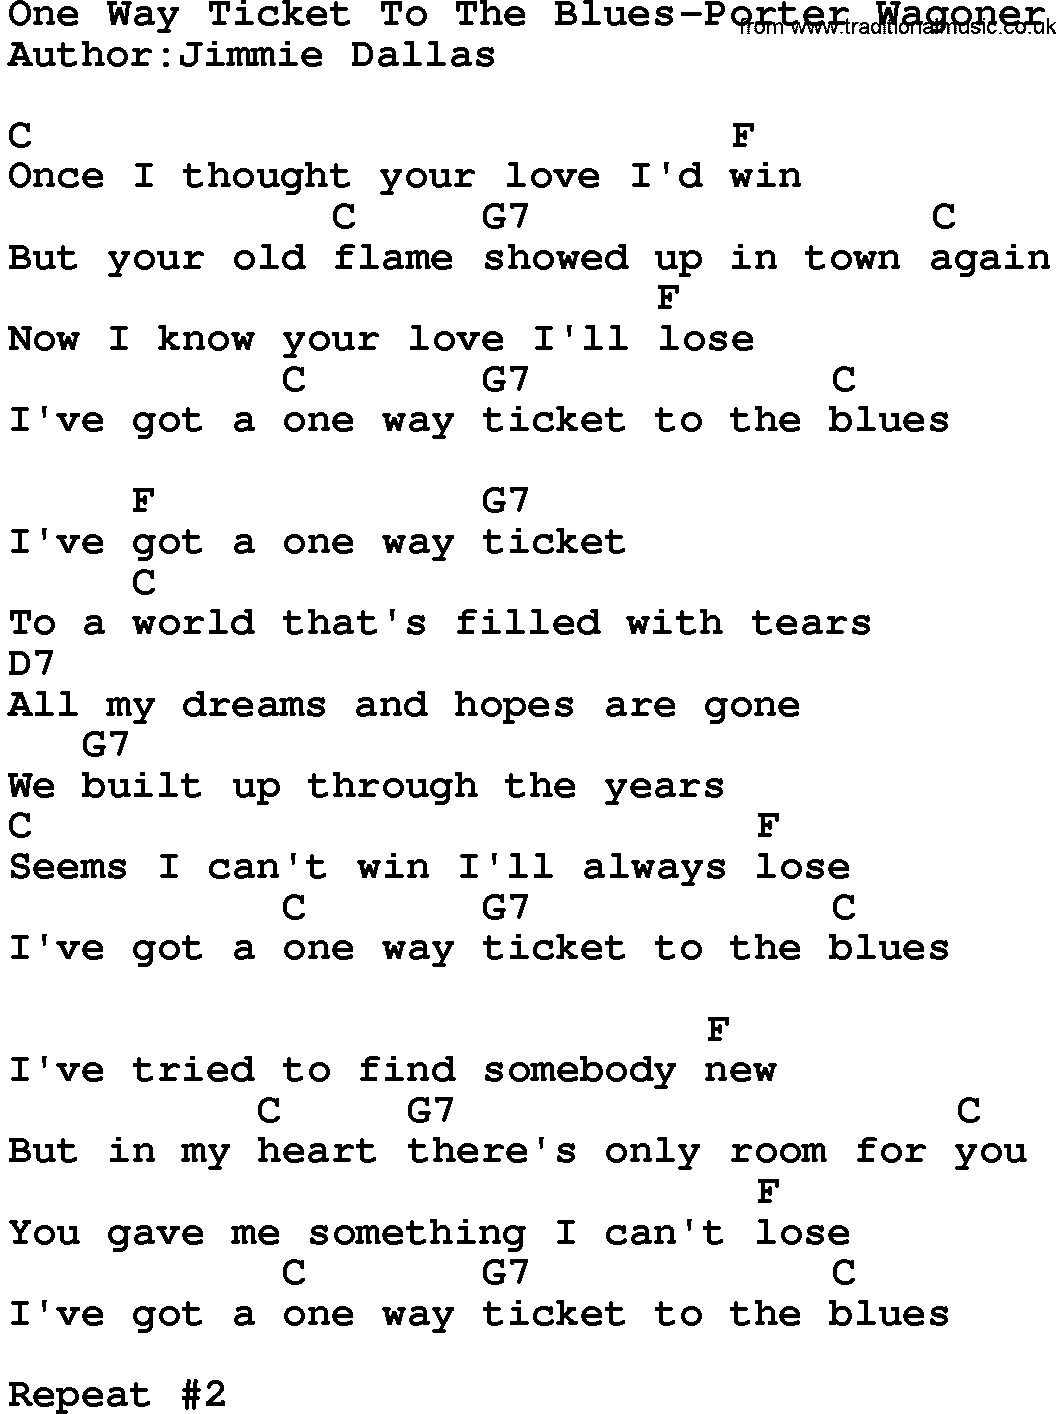 Country Musicone Way Ticket To The Blues Porter Wagoner Lyrics And Chords